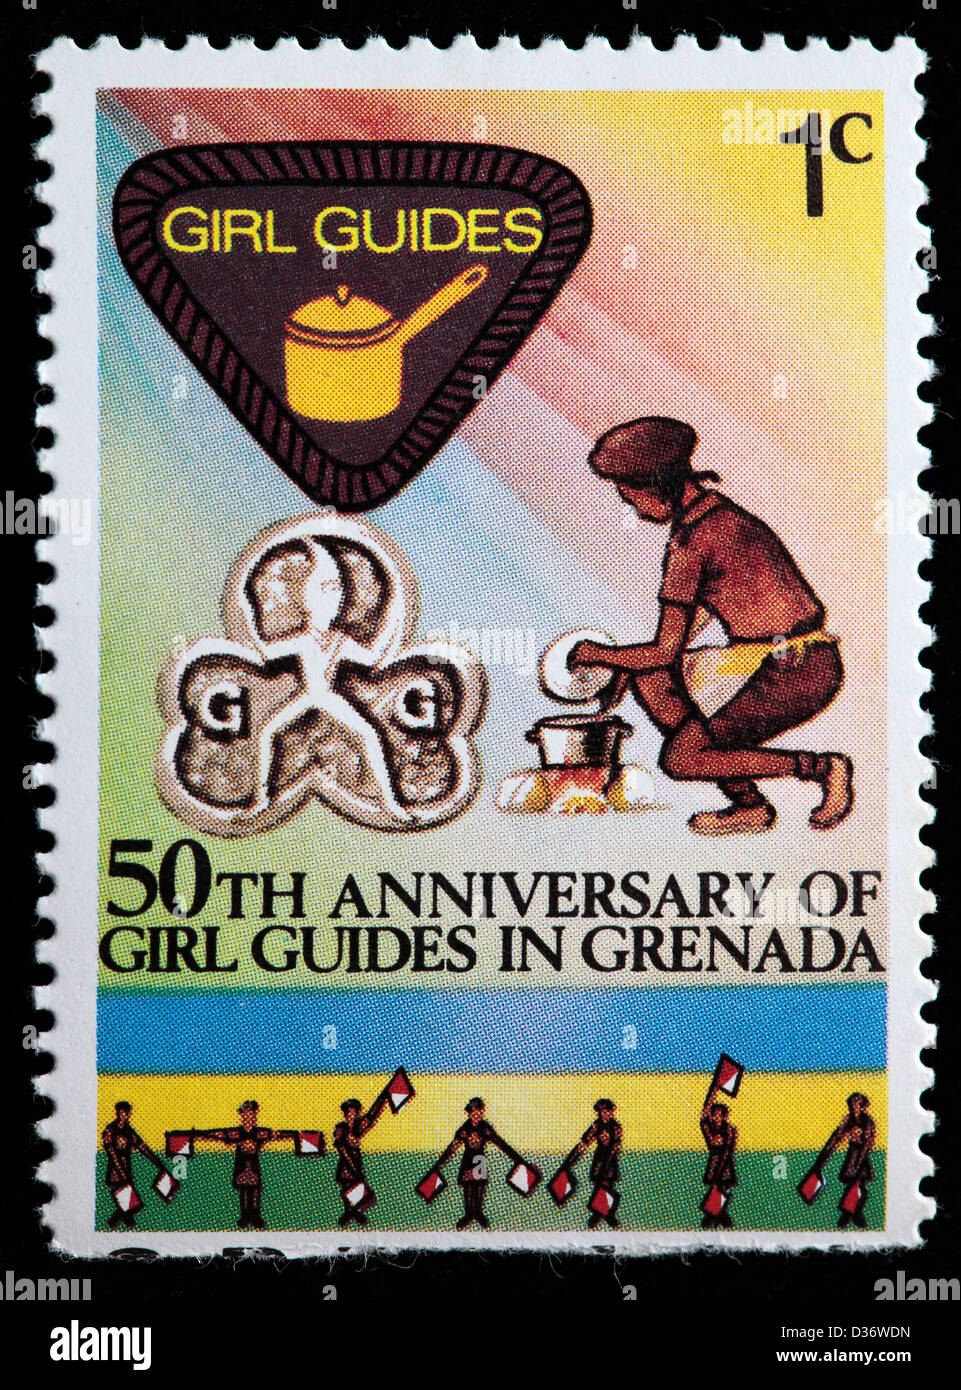 50th Anniversary Of Girl Guides Postage Stamp Grenada 1976